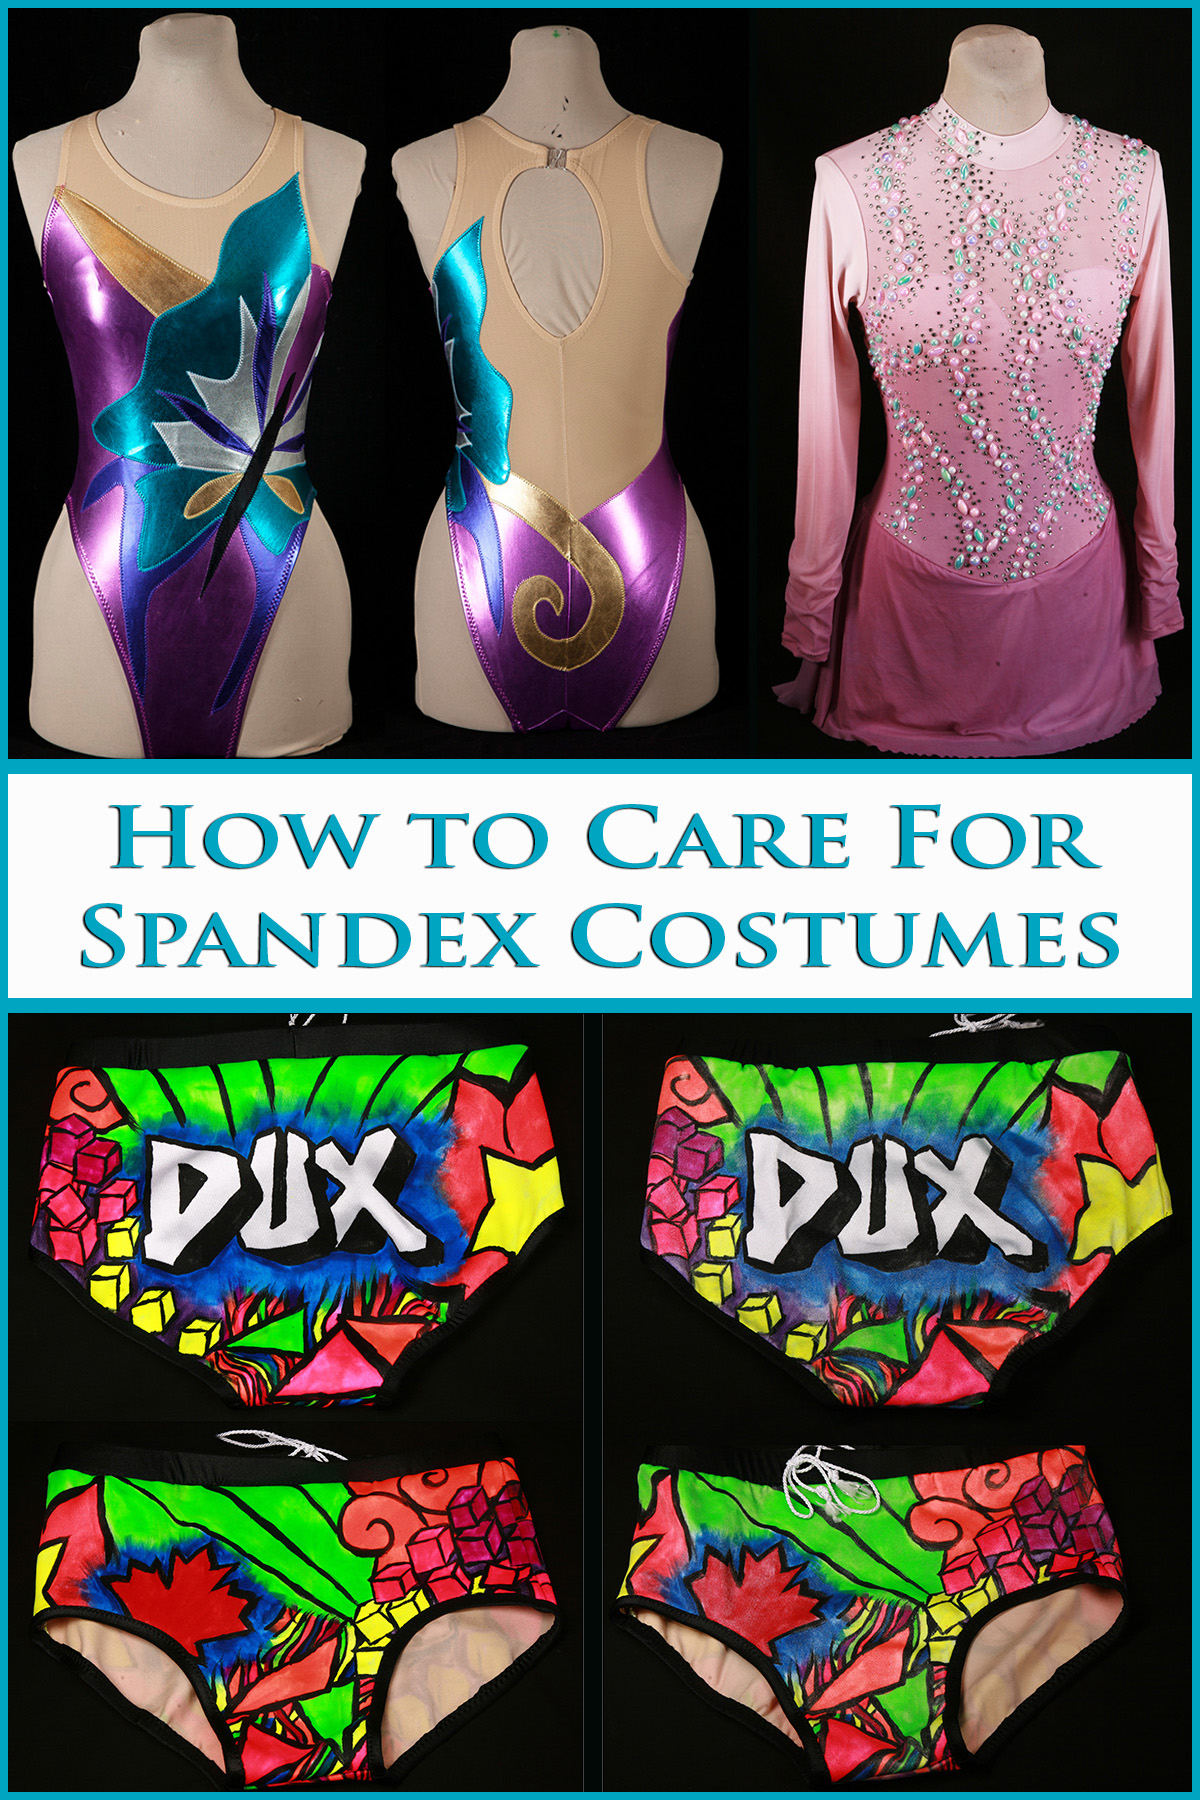 """A compilation image showing a skating dress, synchro swimsuit, and wrestling trunks, with lettering that says """"how to care for spandex costumes""""."""